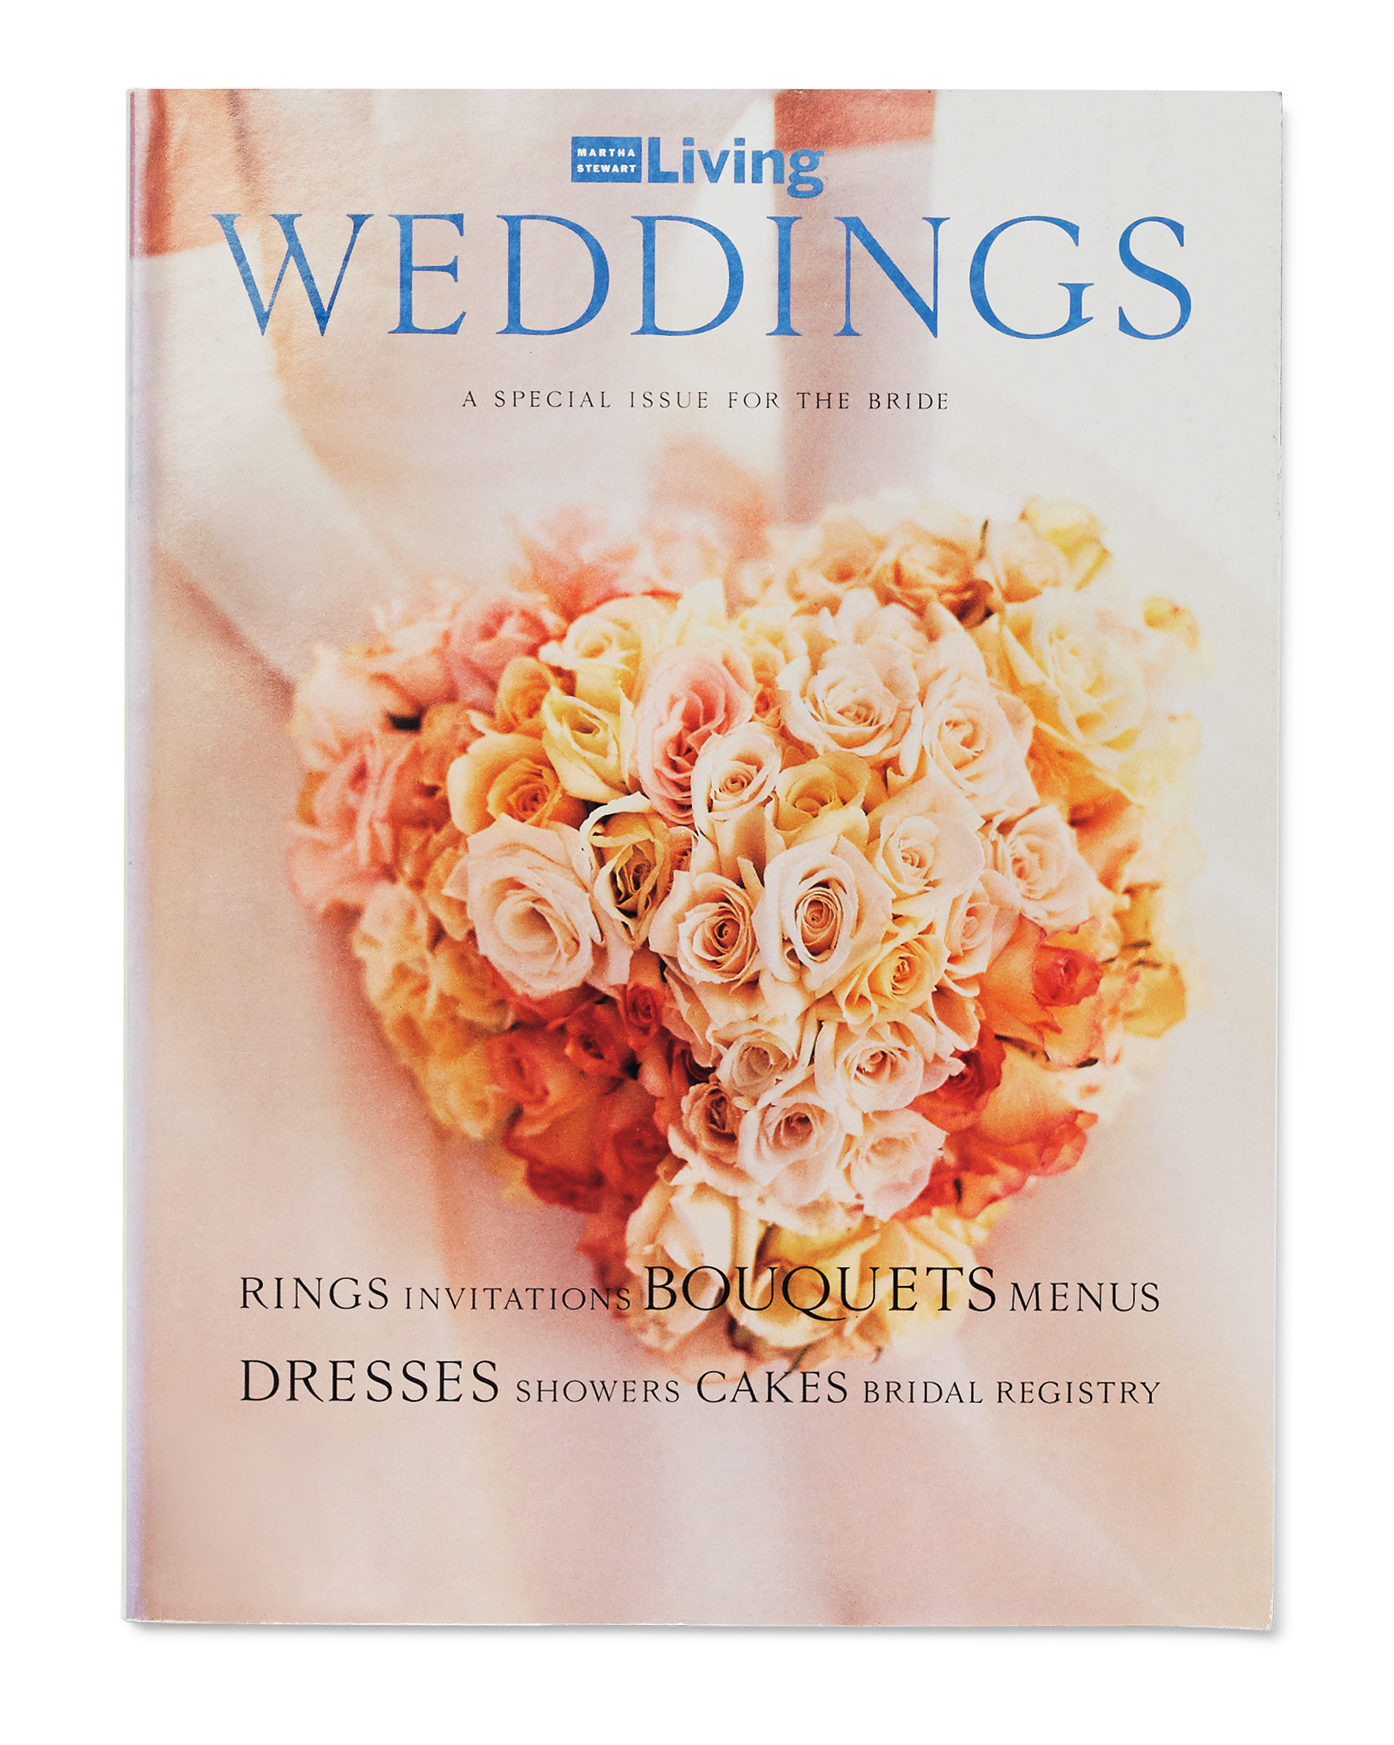 old-weddings-magazine-stack-091-d111549.jpg